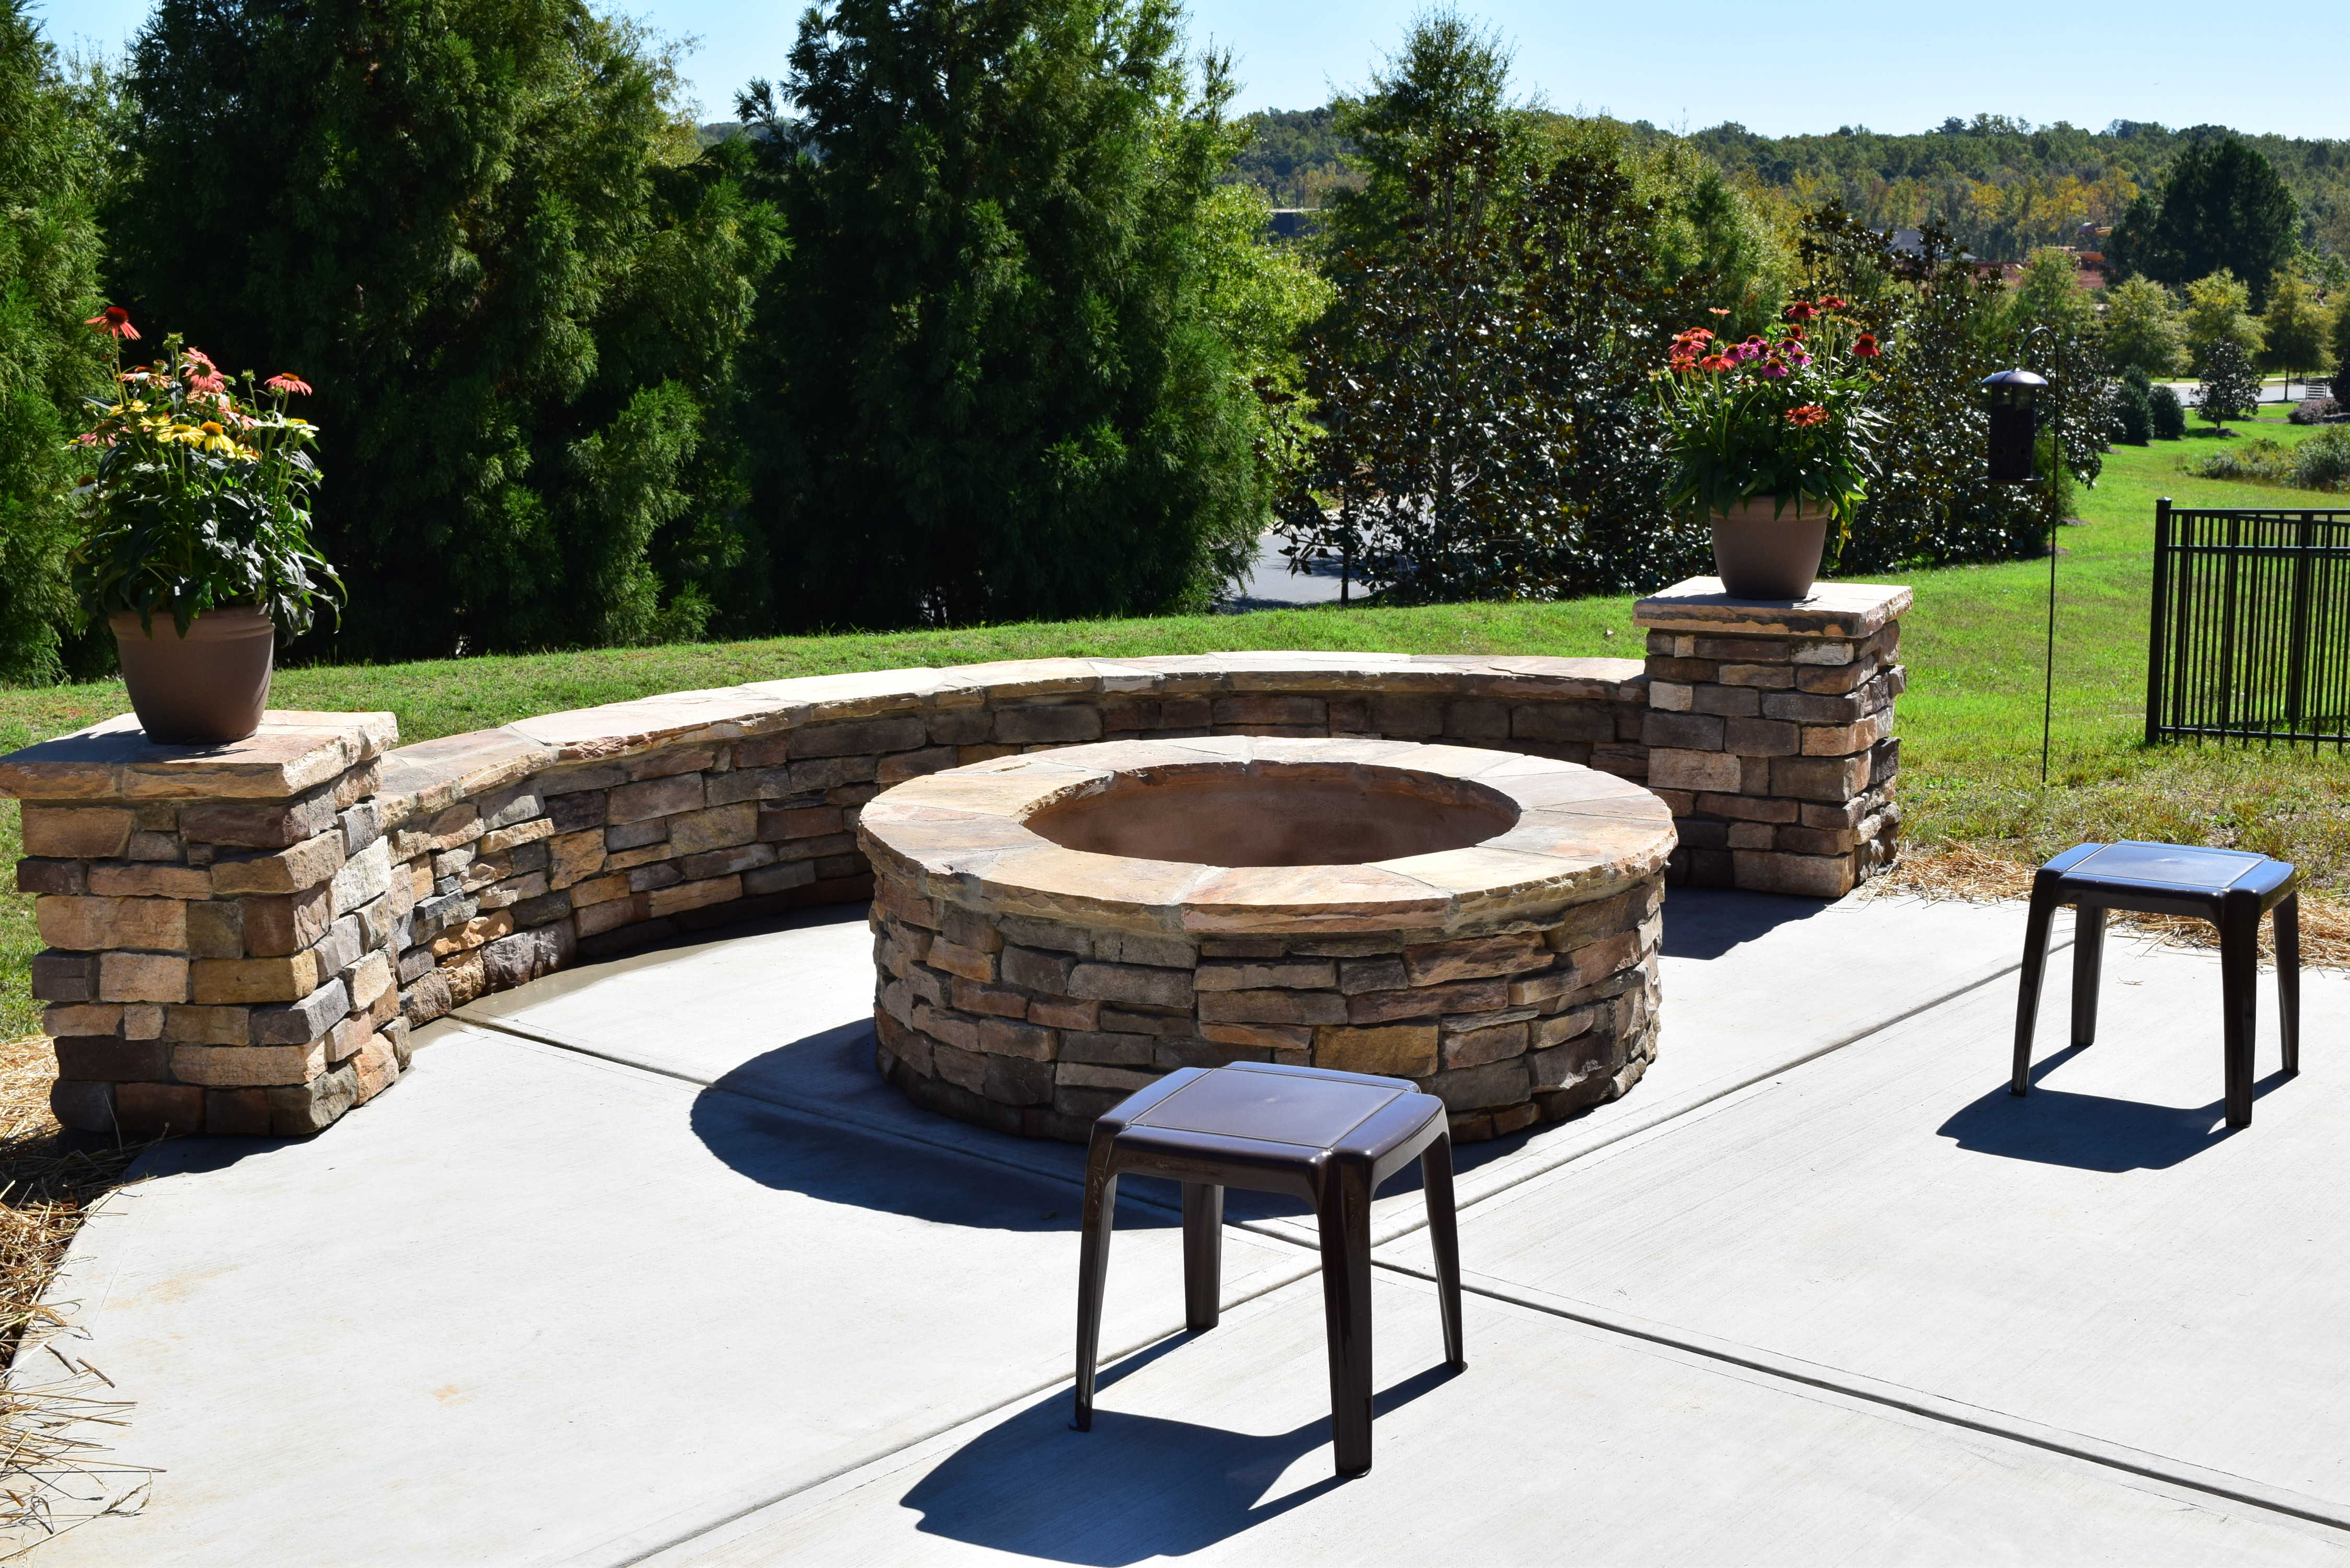 Flossy Stone Fire Pit Lake Norman Stone Fire Pit Bench Stone Fire Pit Gas Nc Patio Stone Fire Pit Charlotte Screen Porch Patio houzz-03 Stone Fire Pit